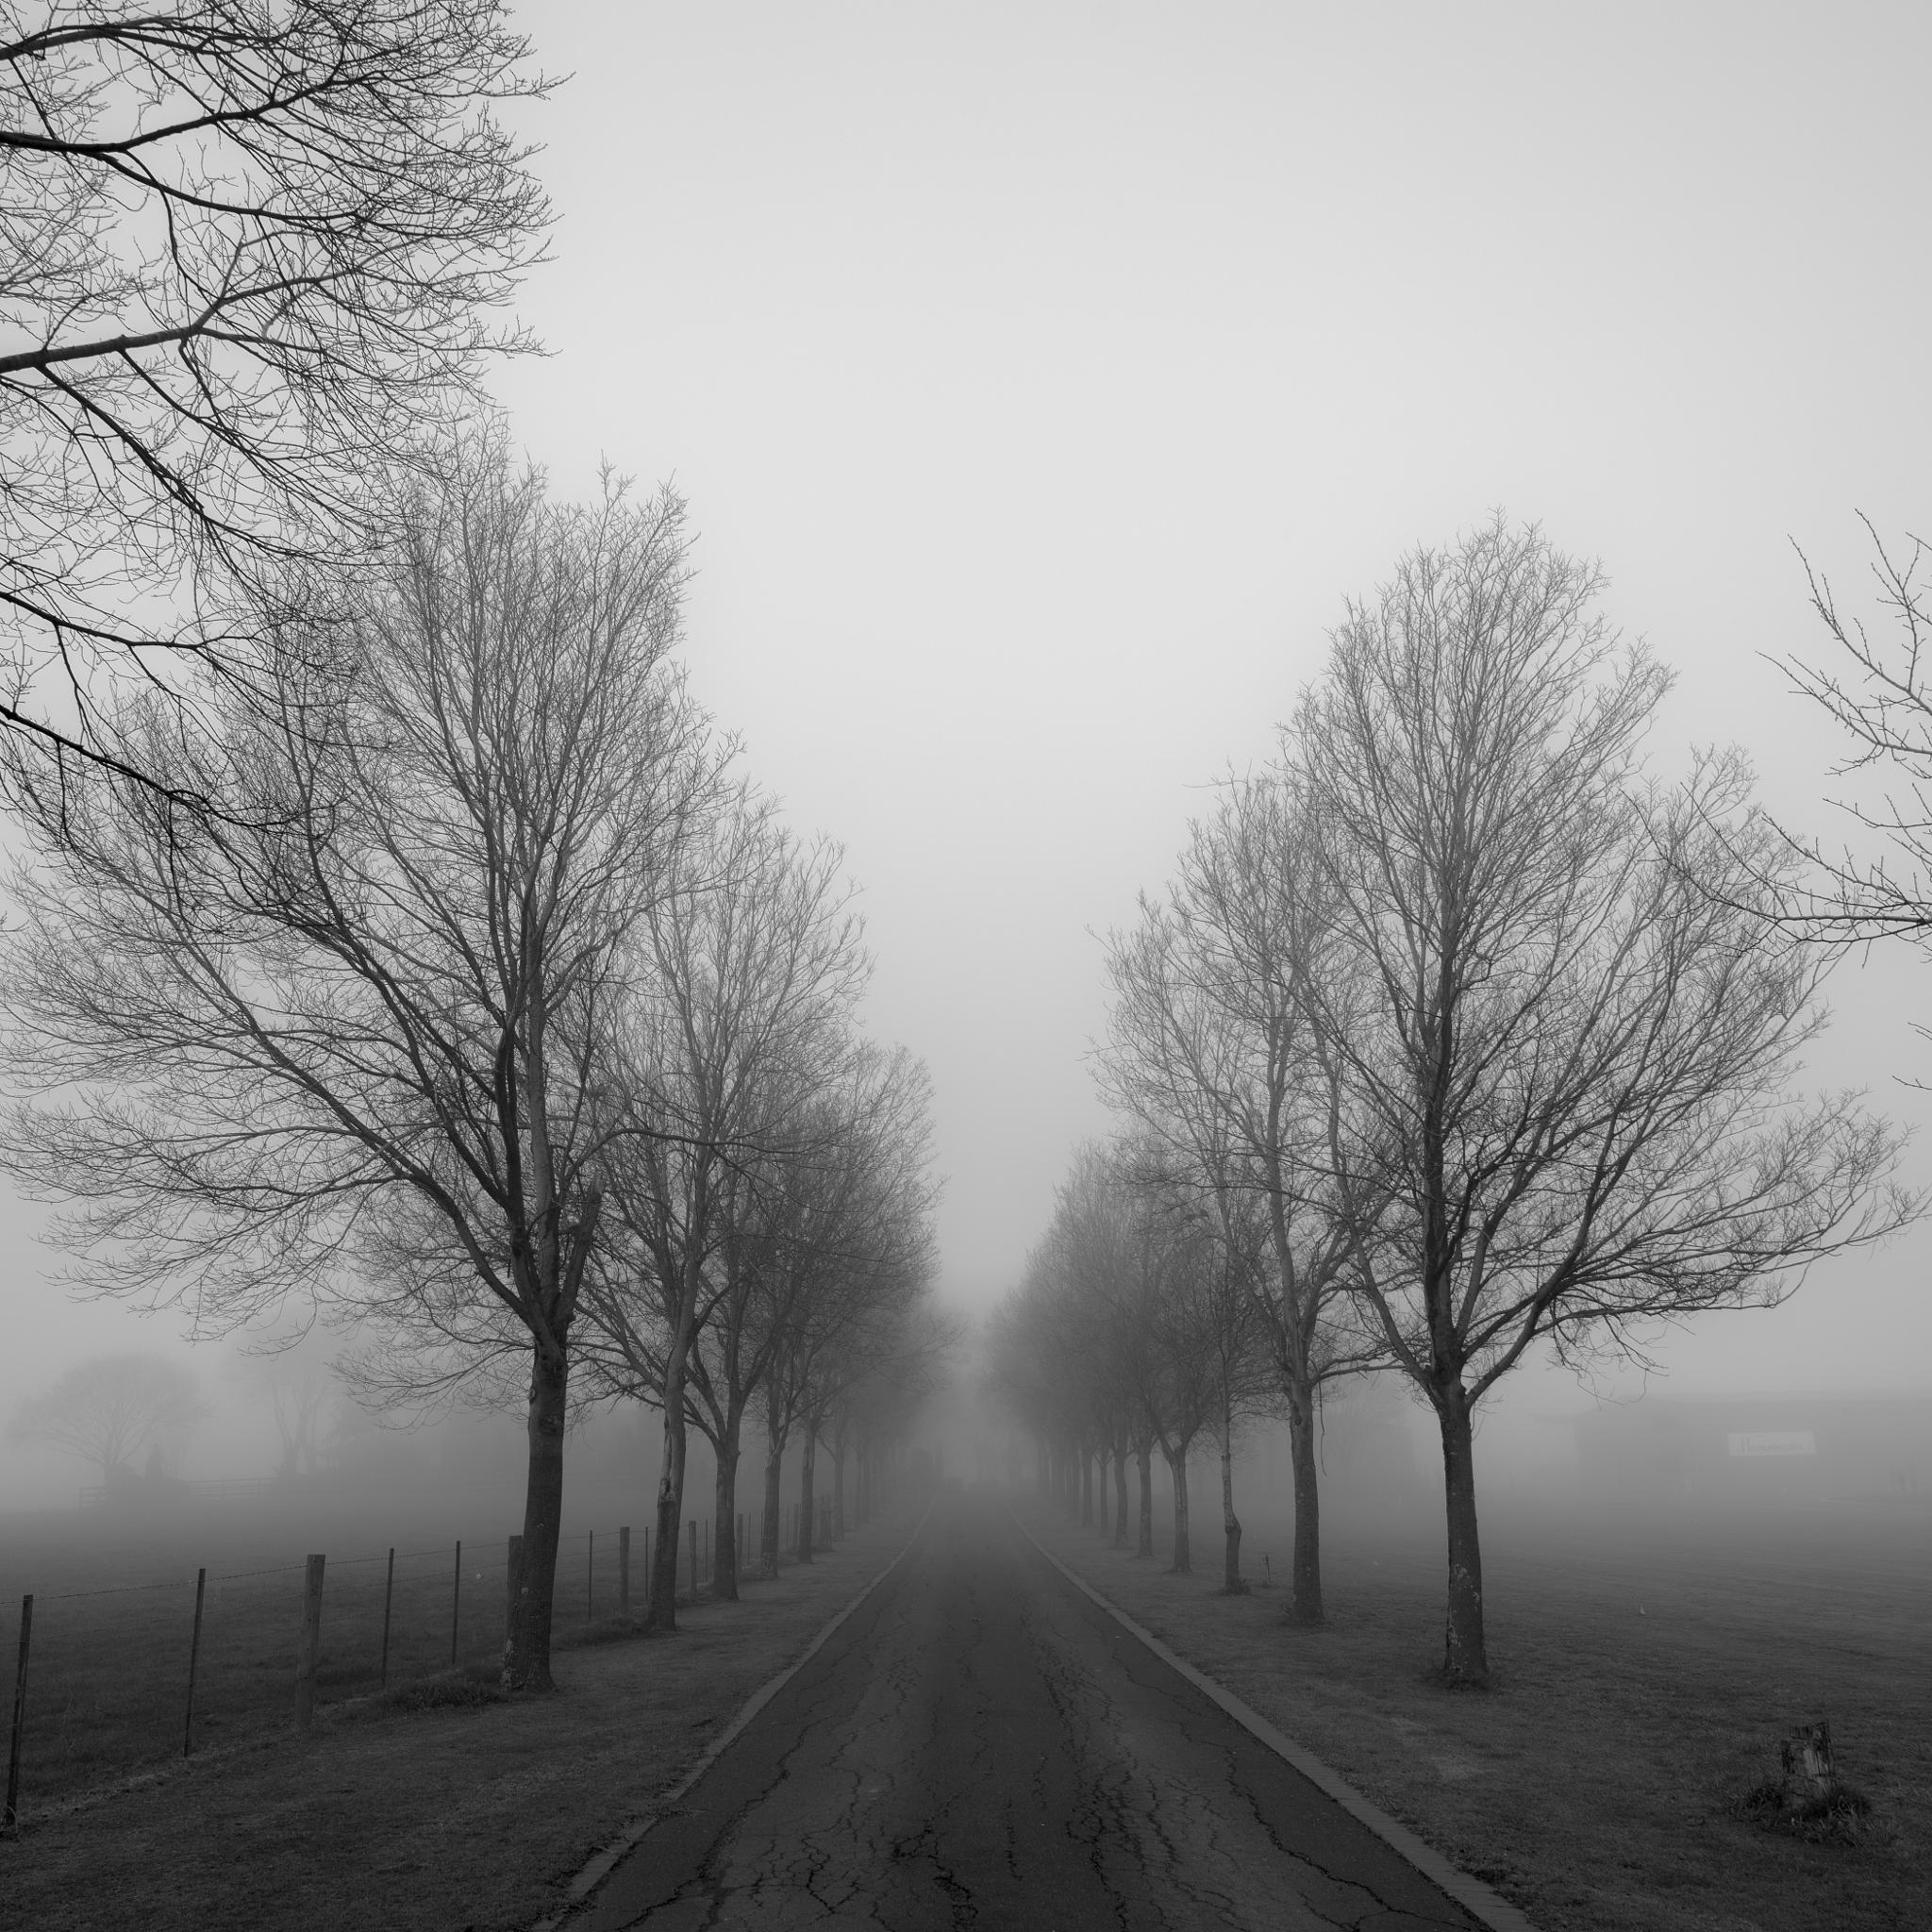 Foggy Day by Peter Nguyen